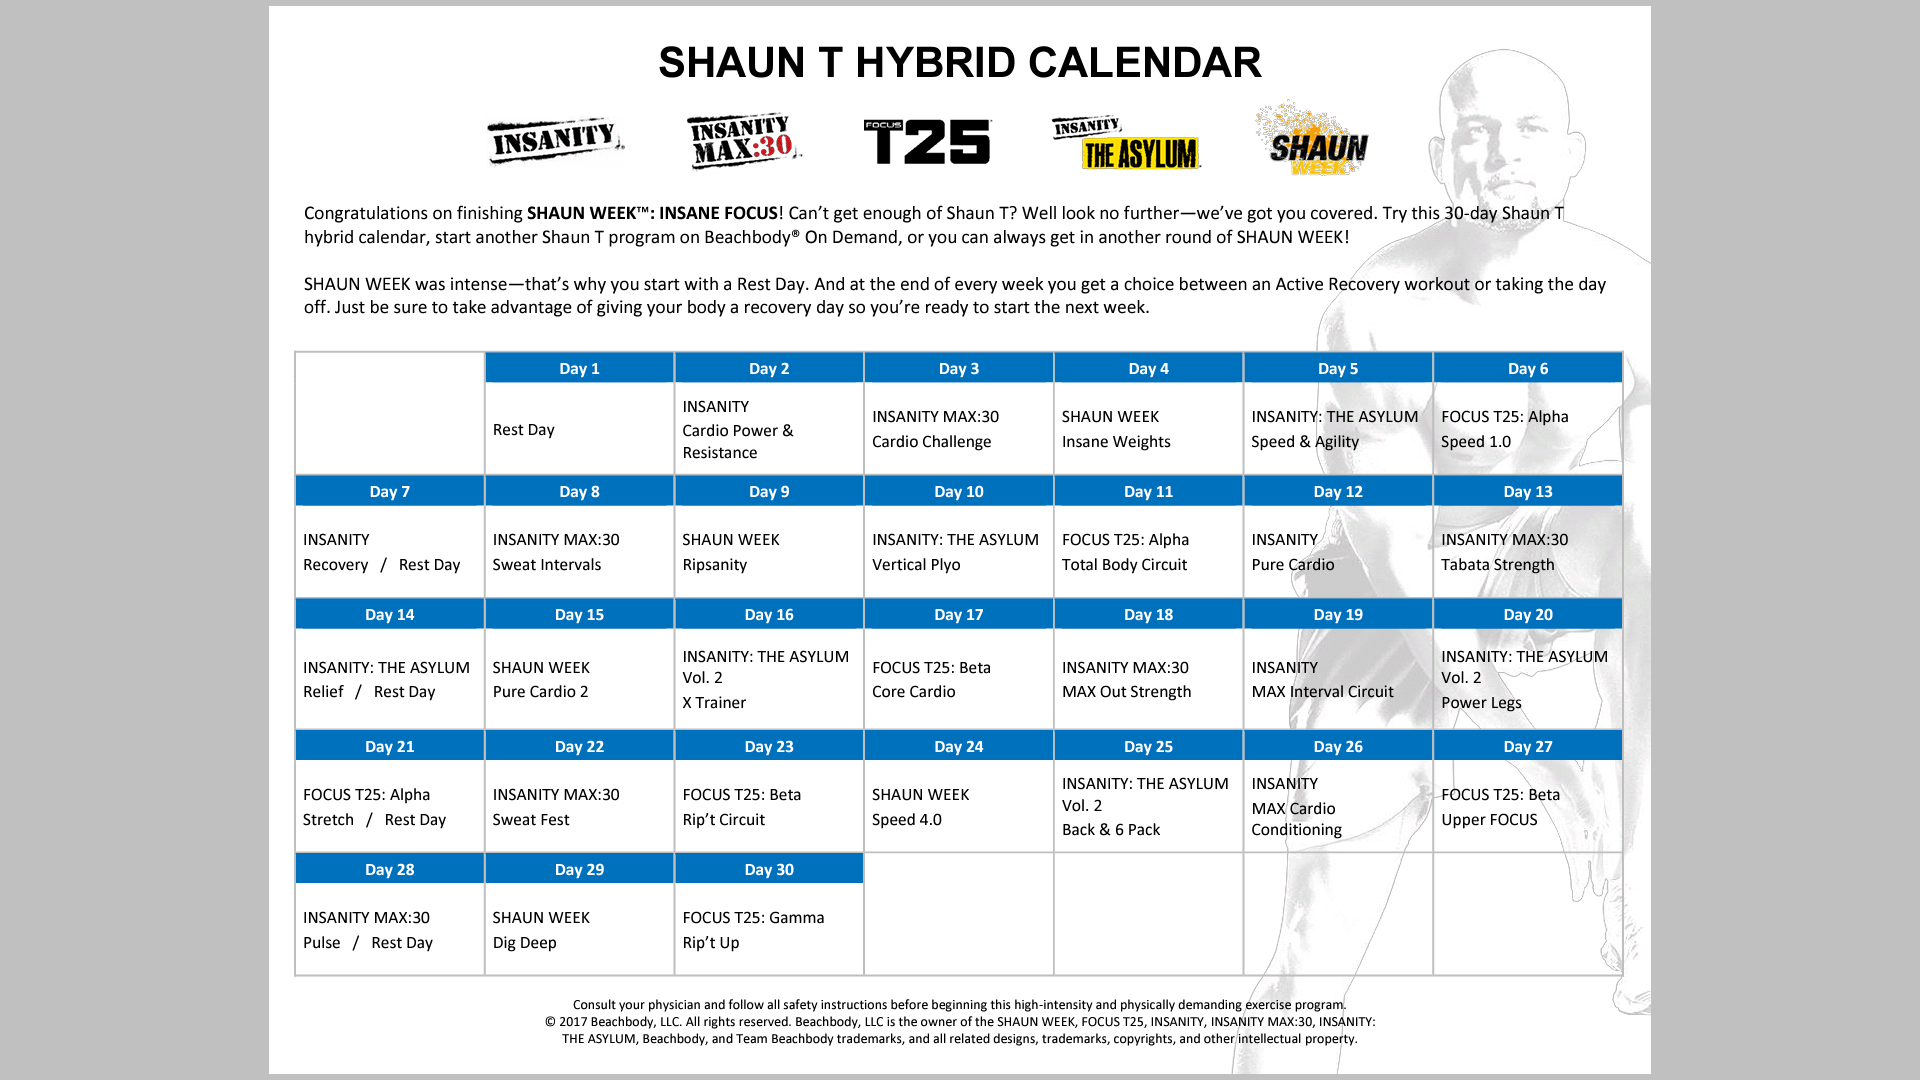 About To Finish Shaun Week. Going To Follow The Hybrid with Insanity Max 30 Calendar